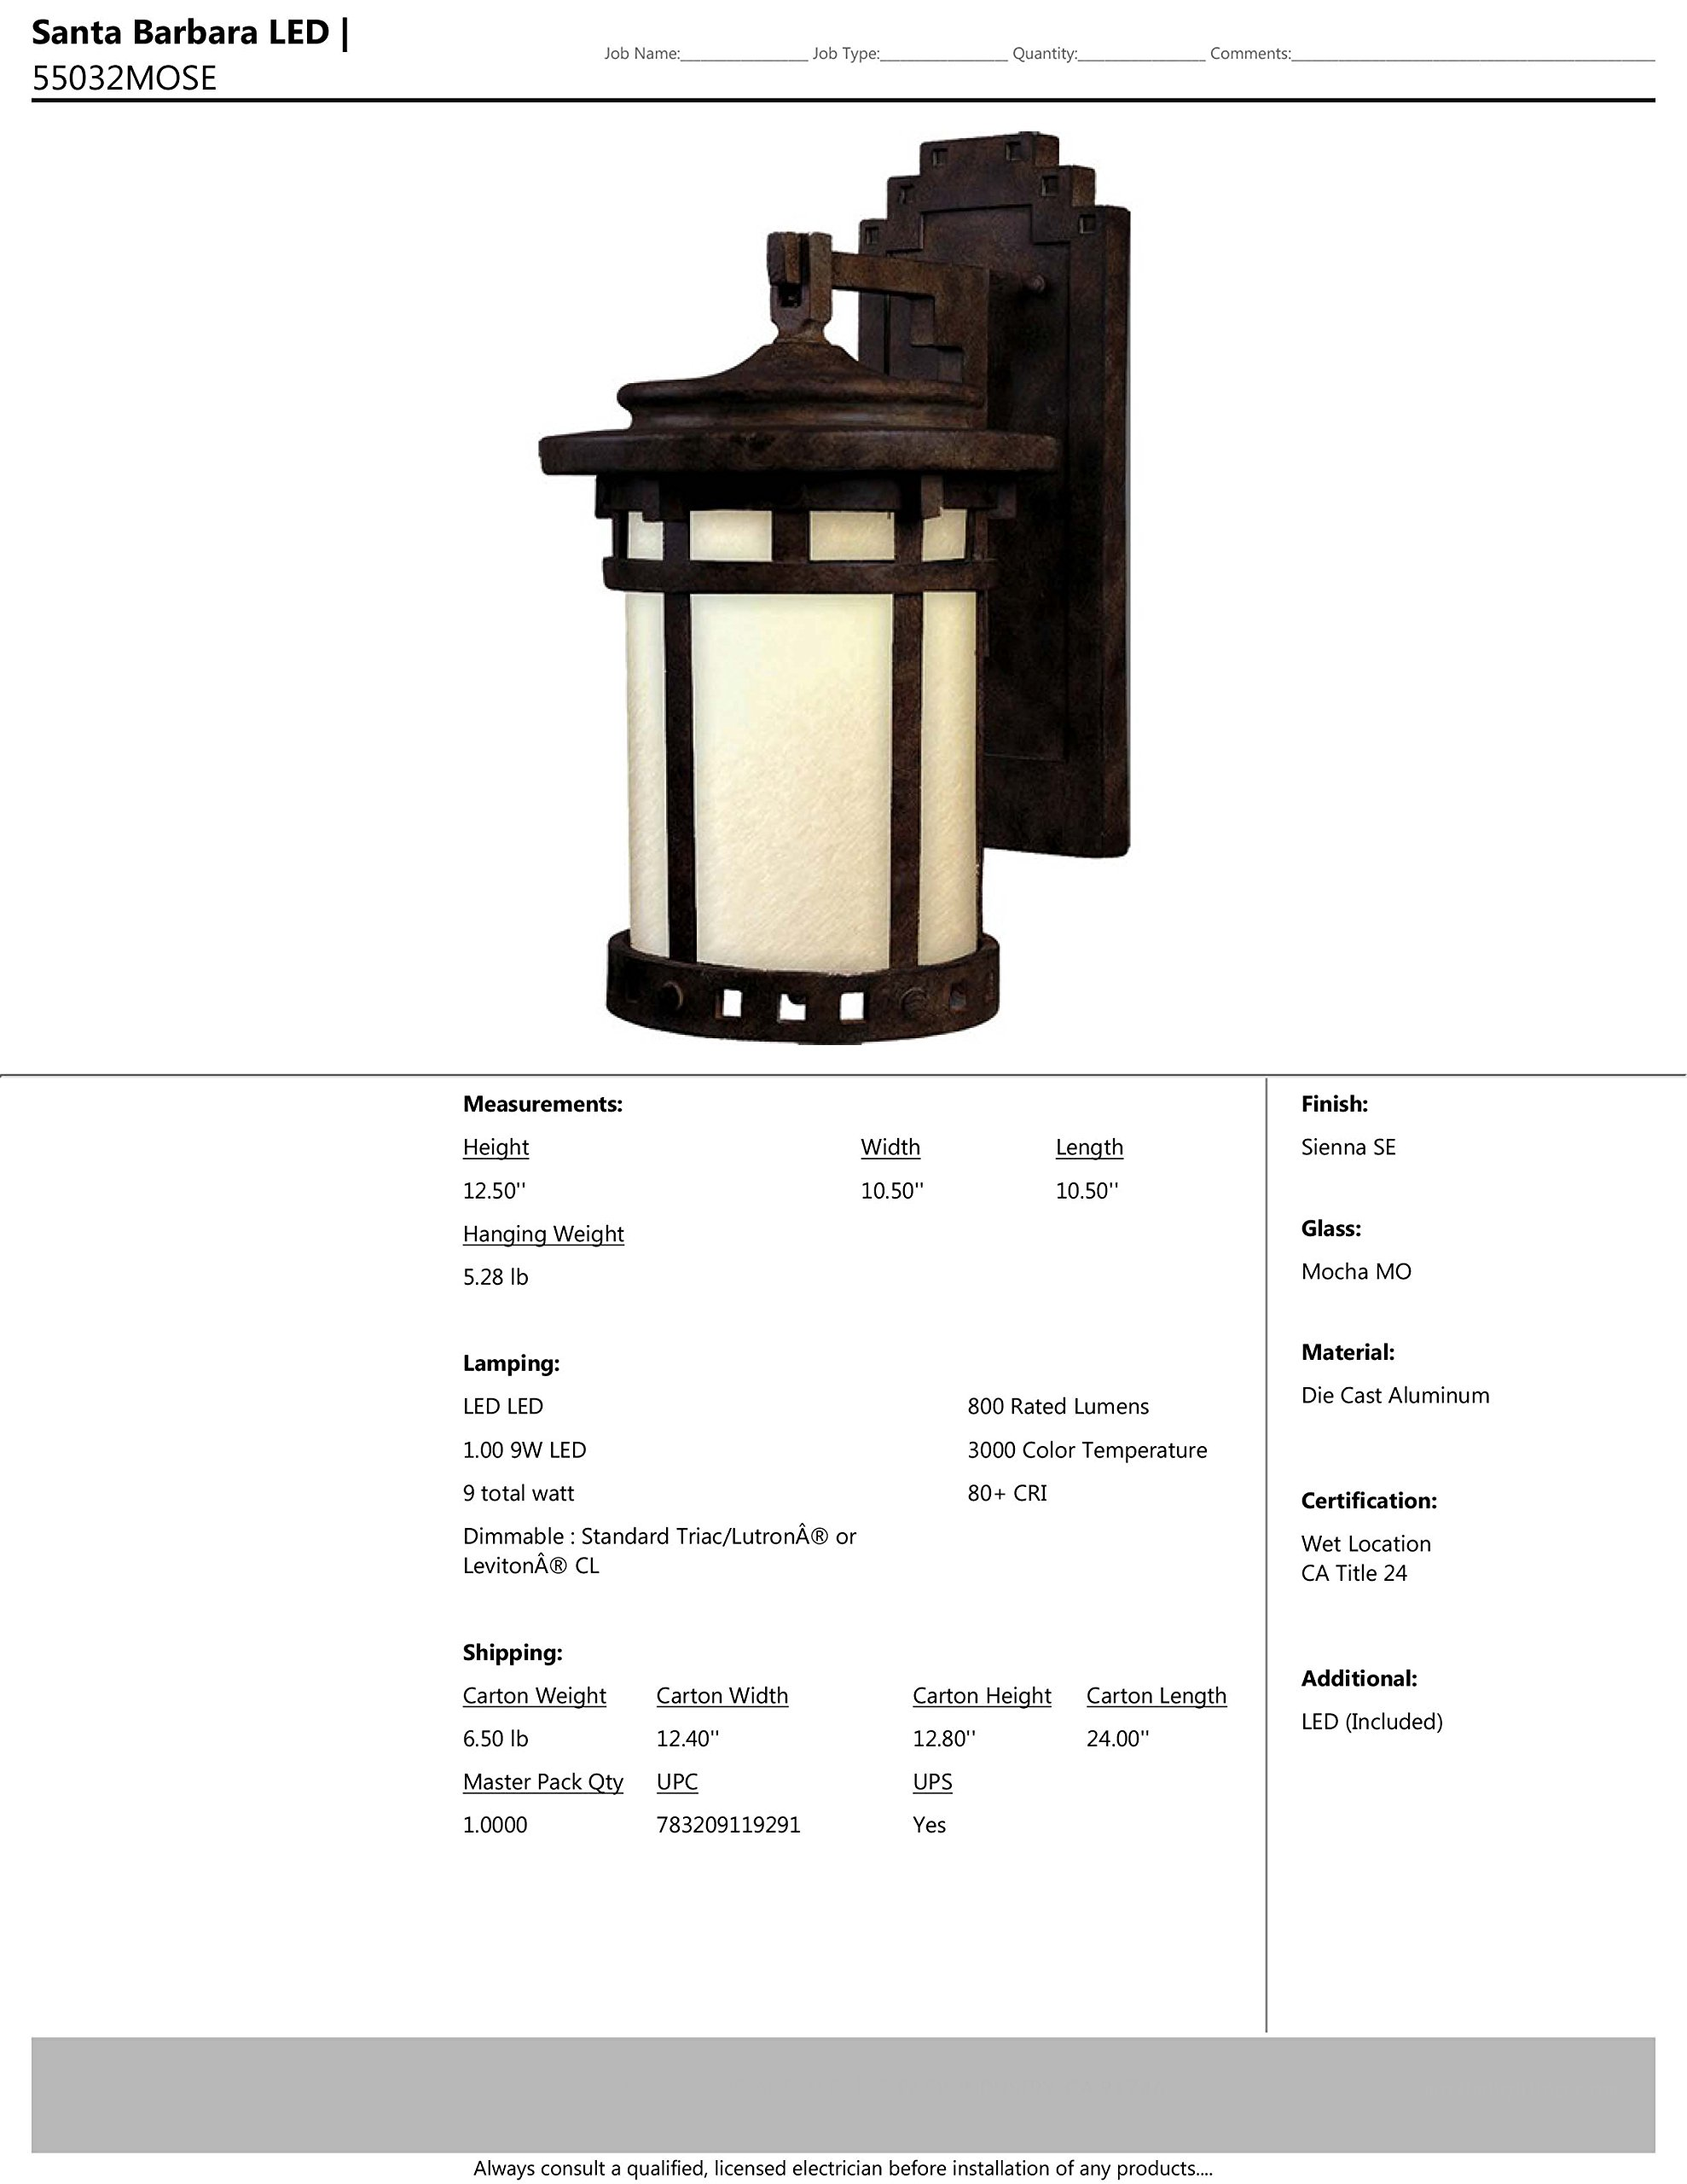 Maxim 55032MOSE Santa Barbara LED 1-Light Outdoor Deck Lantern, Sienna Finish, Mocha Glass, LED Bulb , 60W Max., Dry Safety Rating, Standard Dimmable, Glass Shade Material, 2016 Rated Lumens